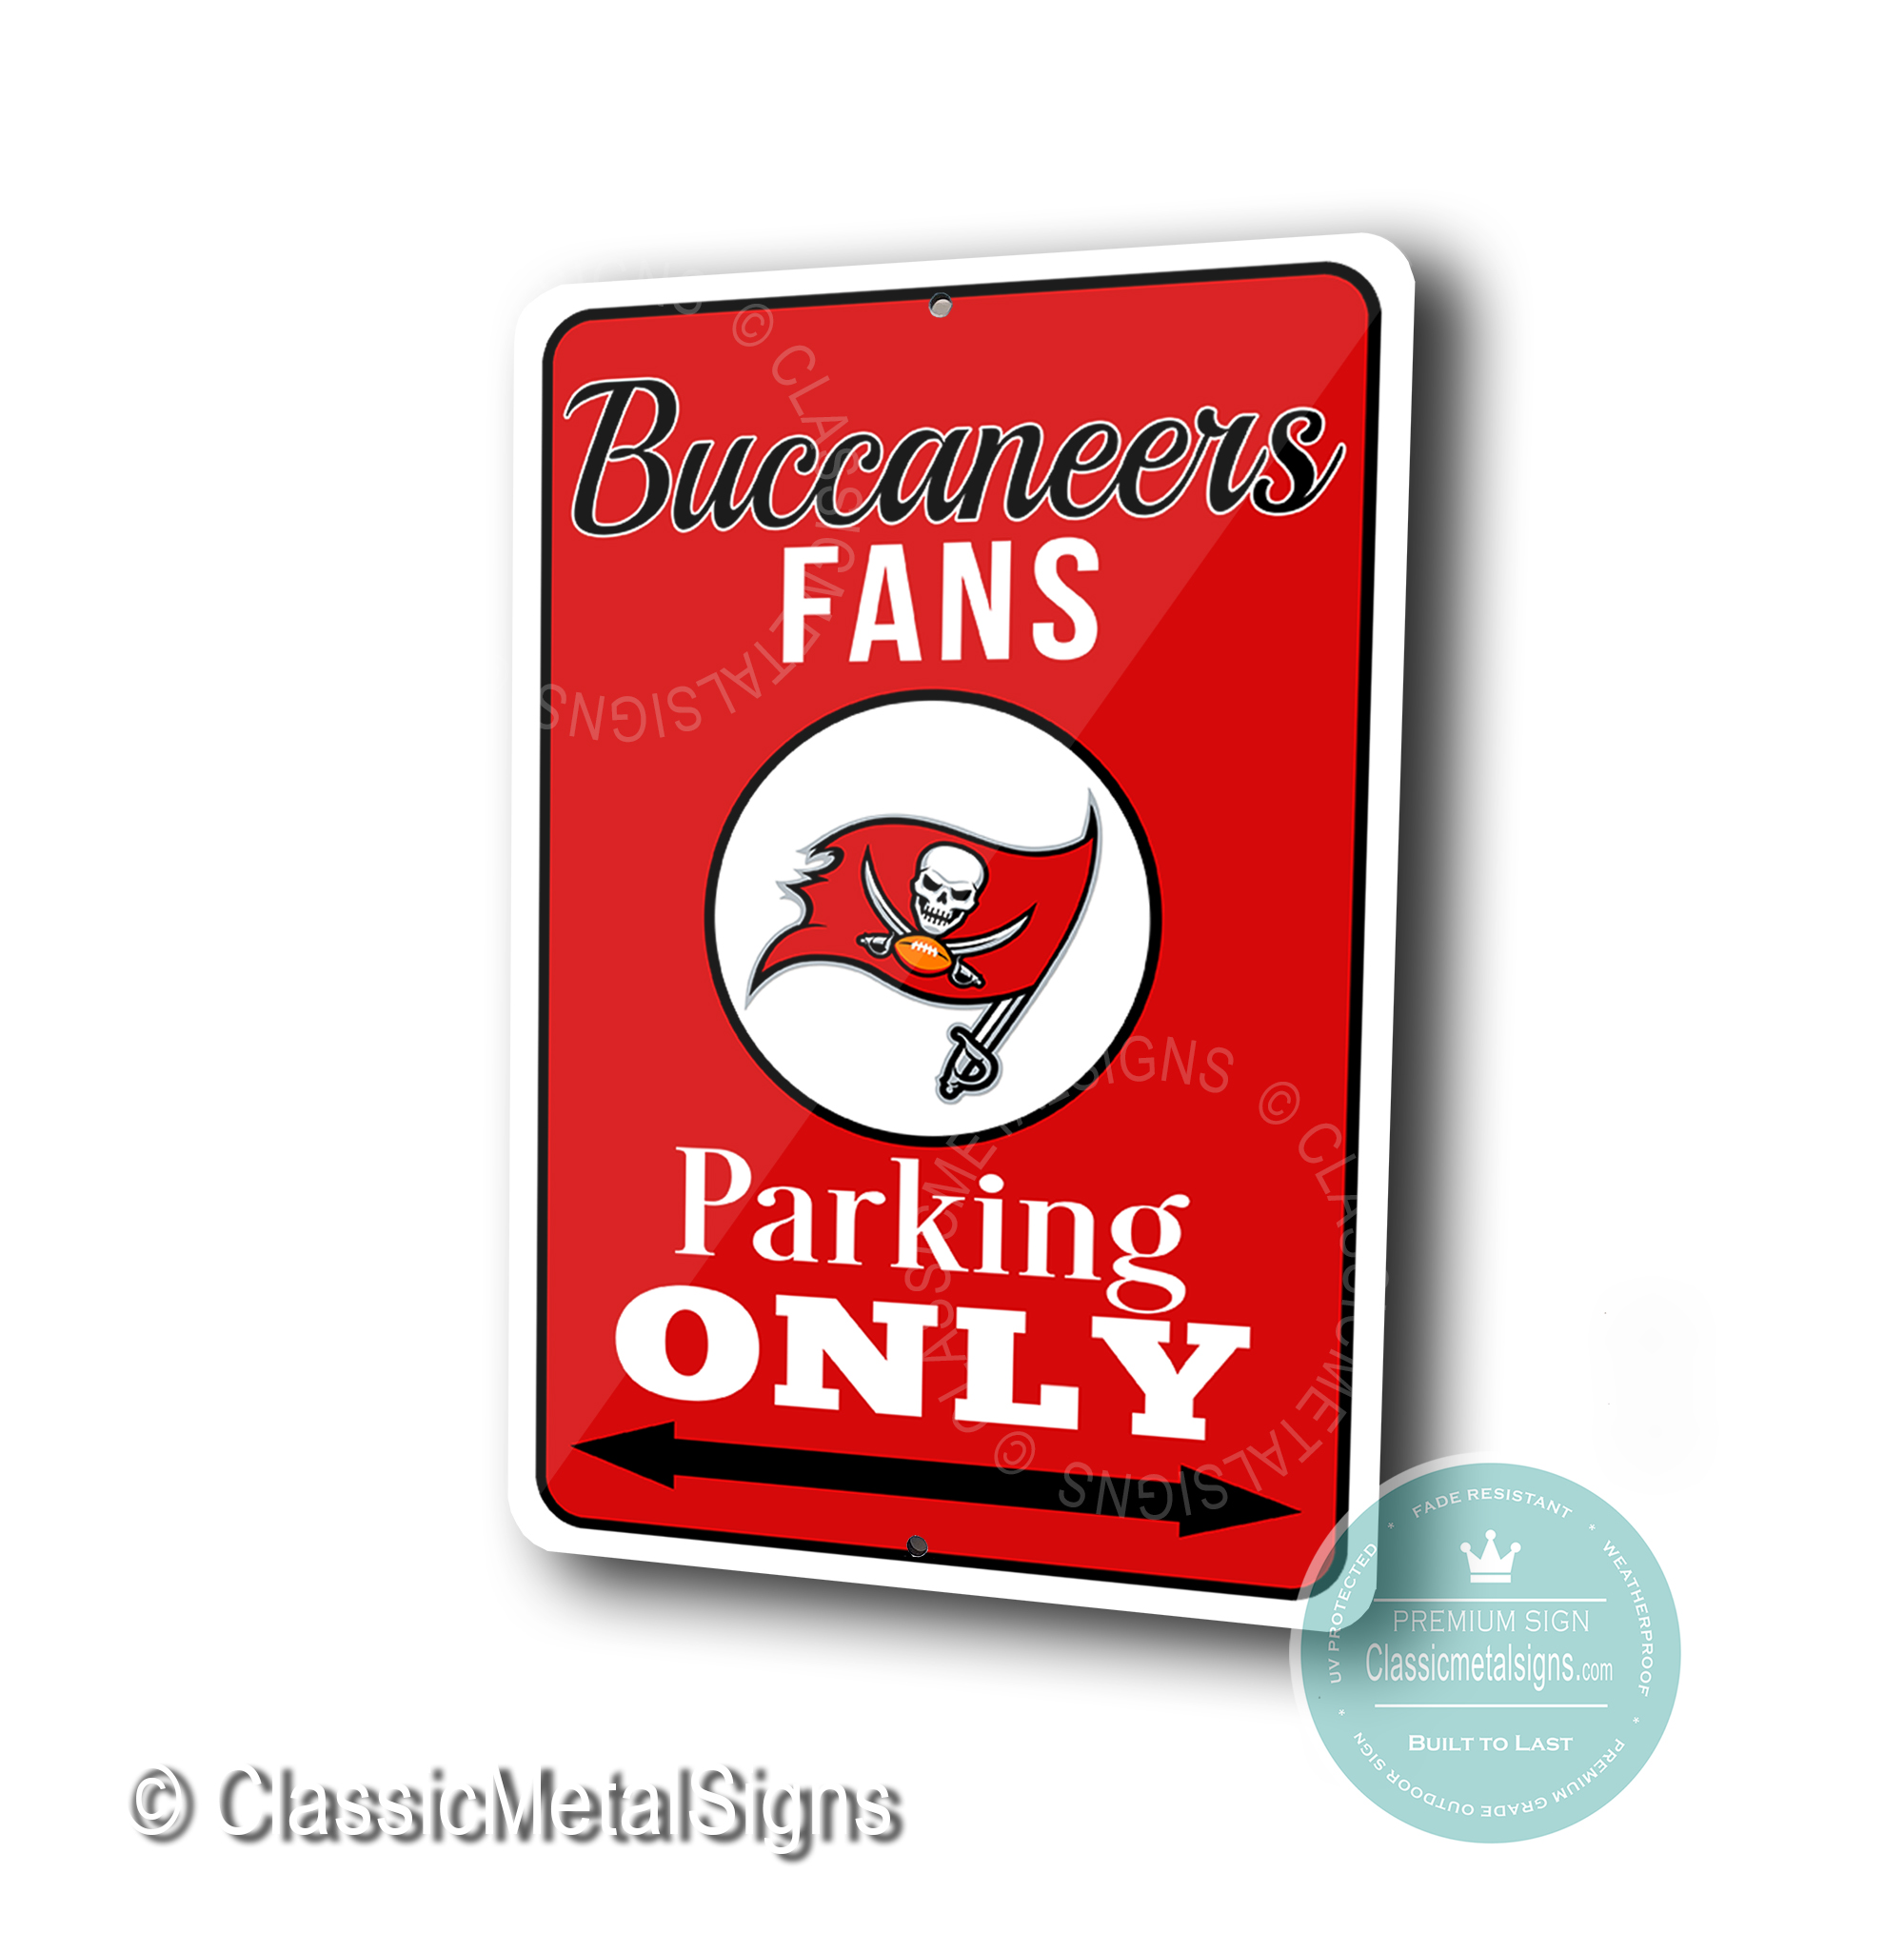 Tampa Bay Buccaneers Parking Only Signs